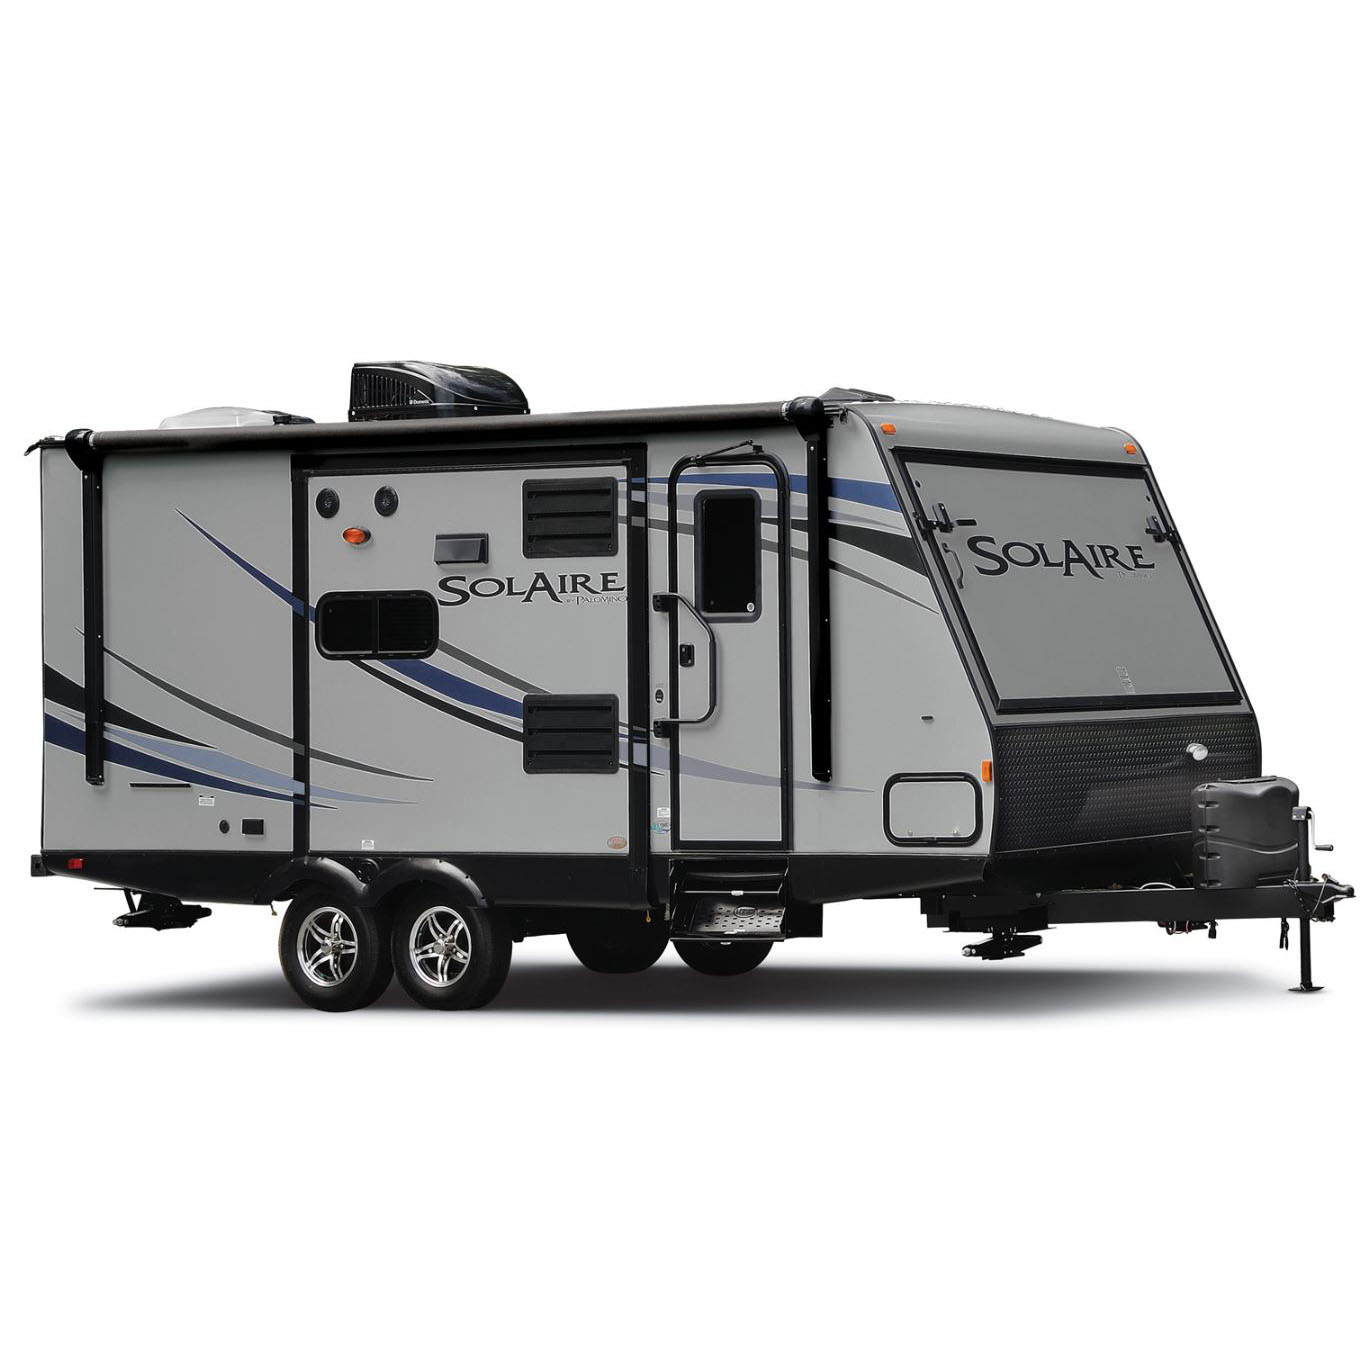 expandable travel trailers | Camper Photo Gallery